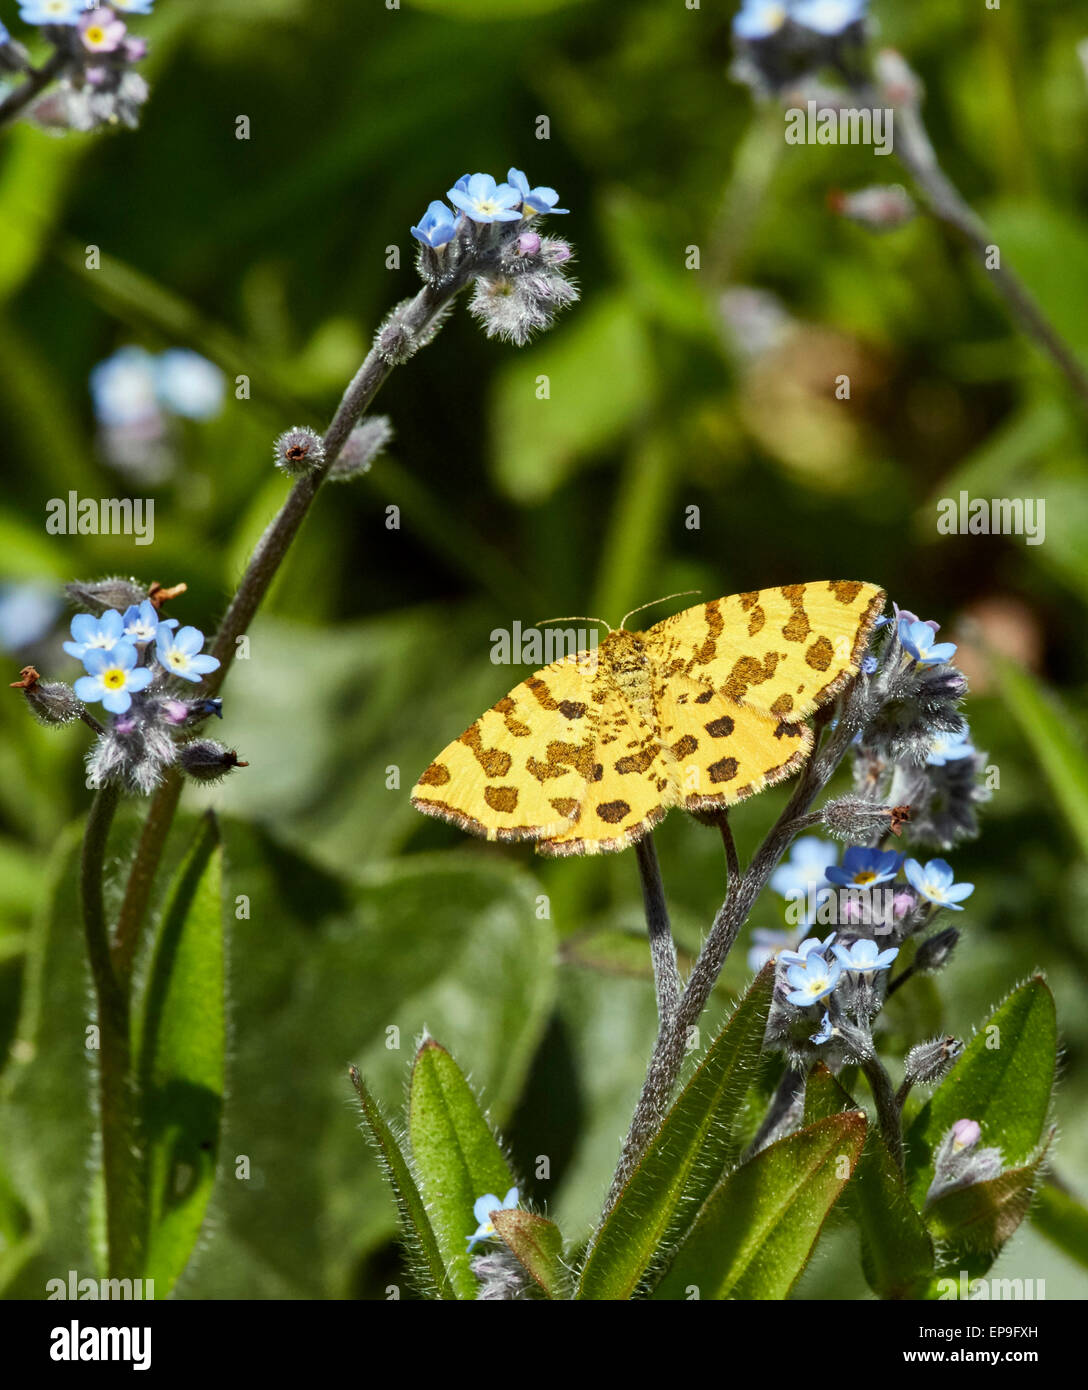 Speckled Yellow moth on Forget-Me-Not flowers. Fairmile Common, Esher, Surrey, England. Stock Photo